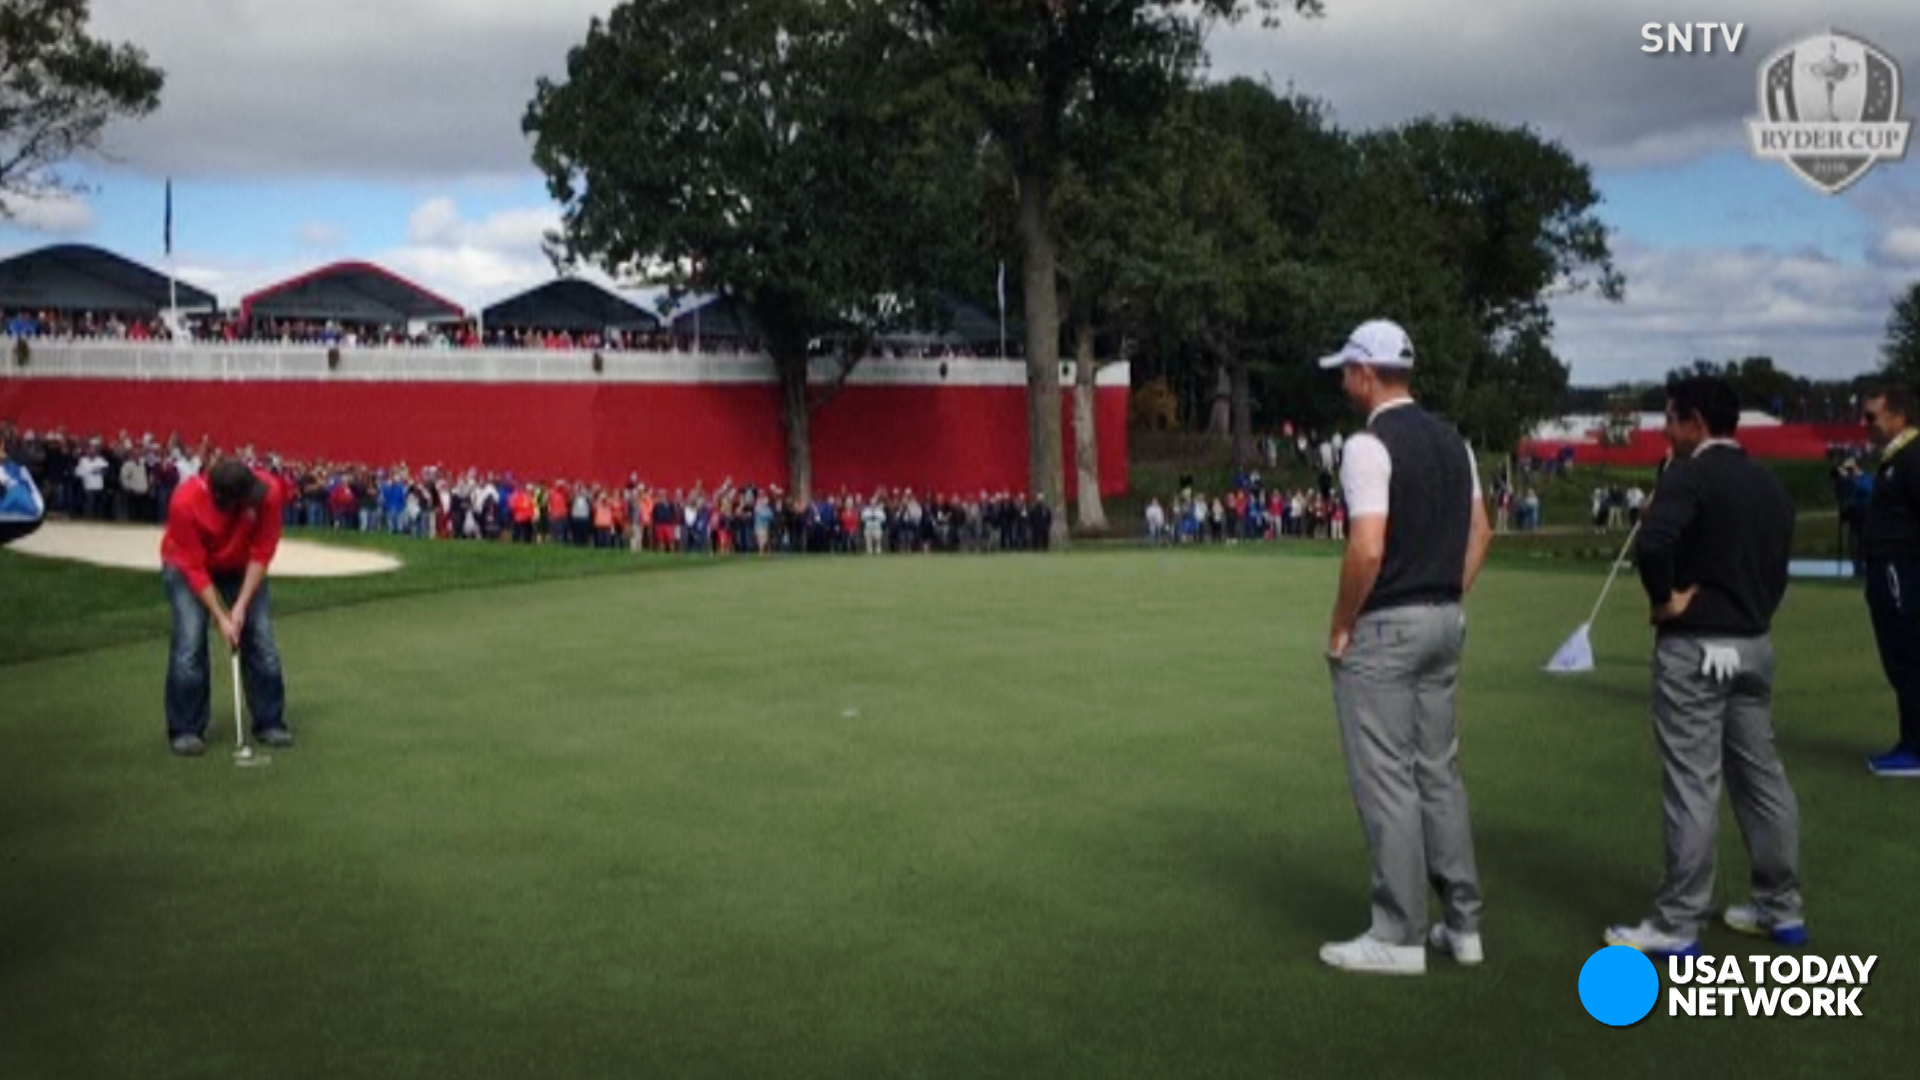 When Rory McIlroy and Henrik Stenson kept missing a putt during a Ryder Cup practice round, a spectator showed them how it's done.